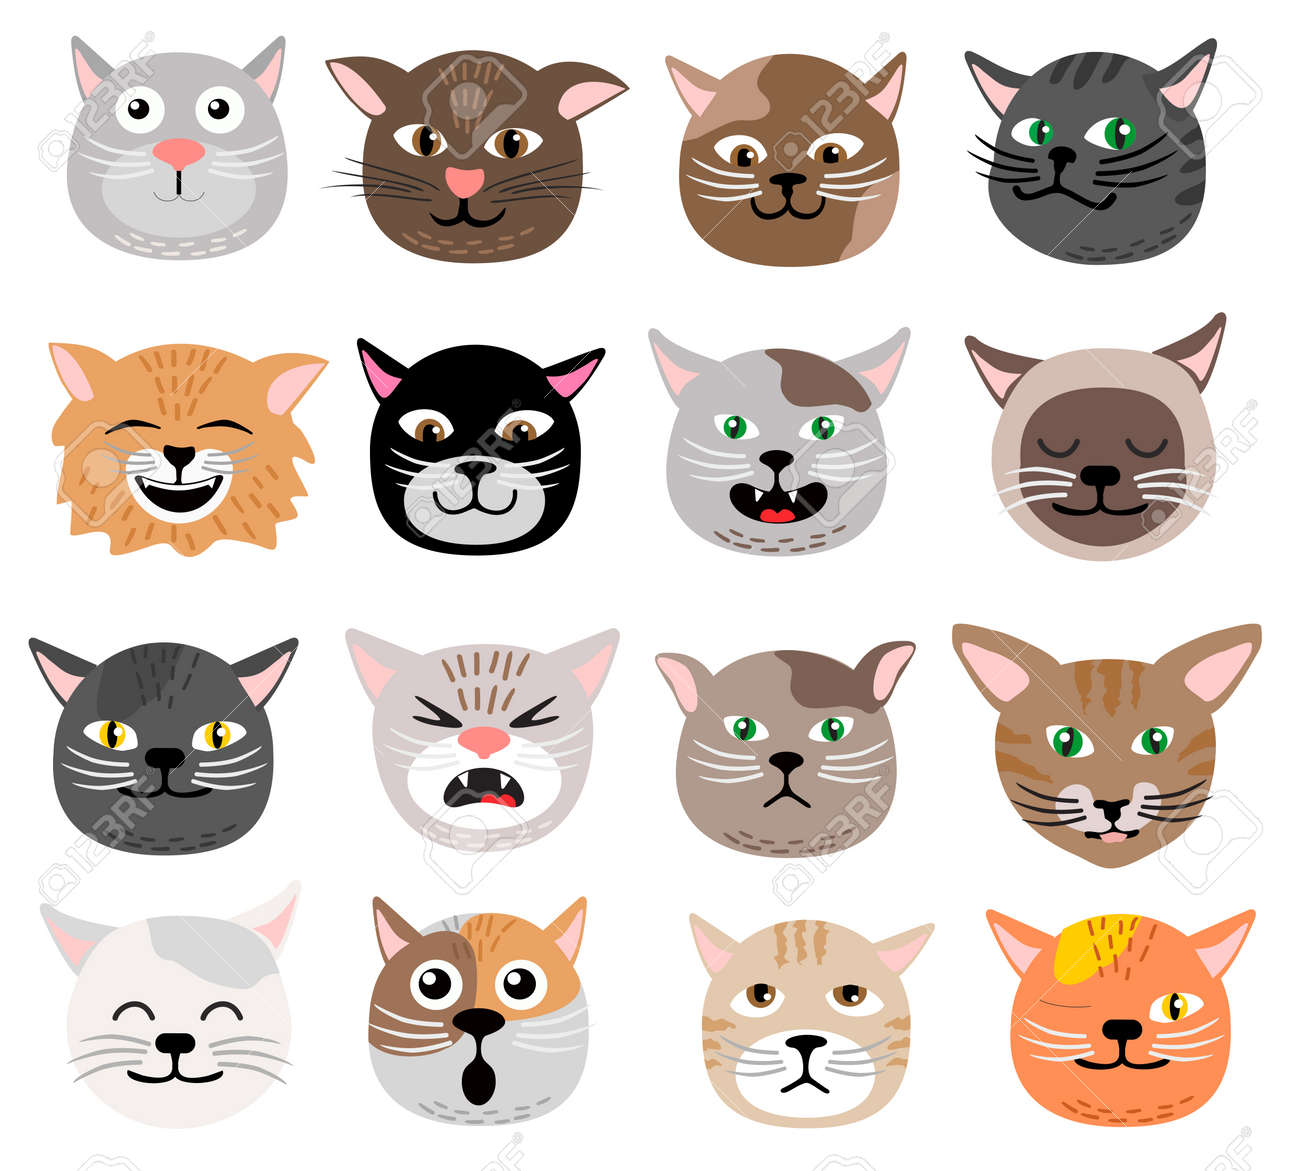 Funny cat face set vector illustration emotions Cute animal face cat heads collection - 169743707